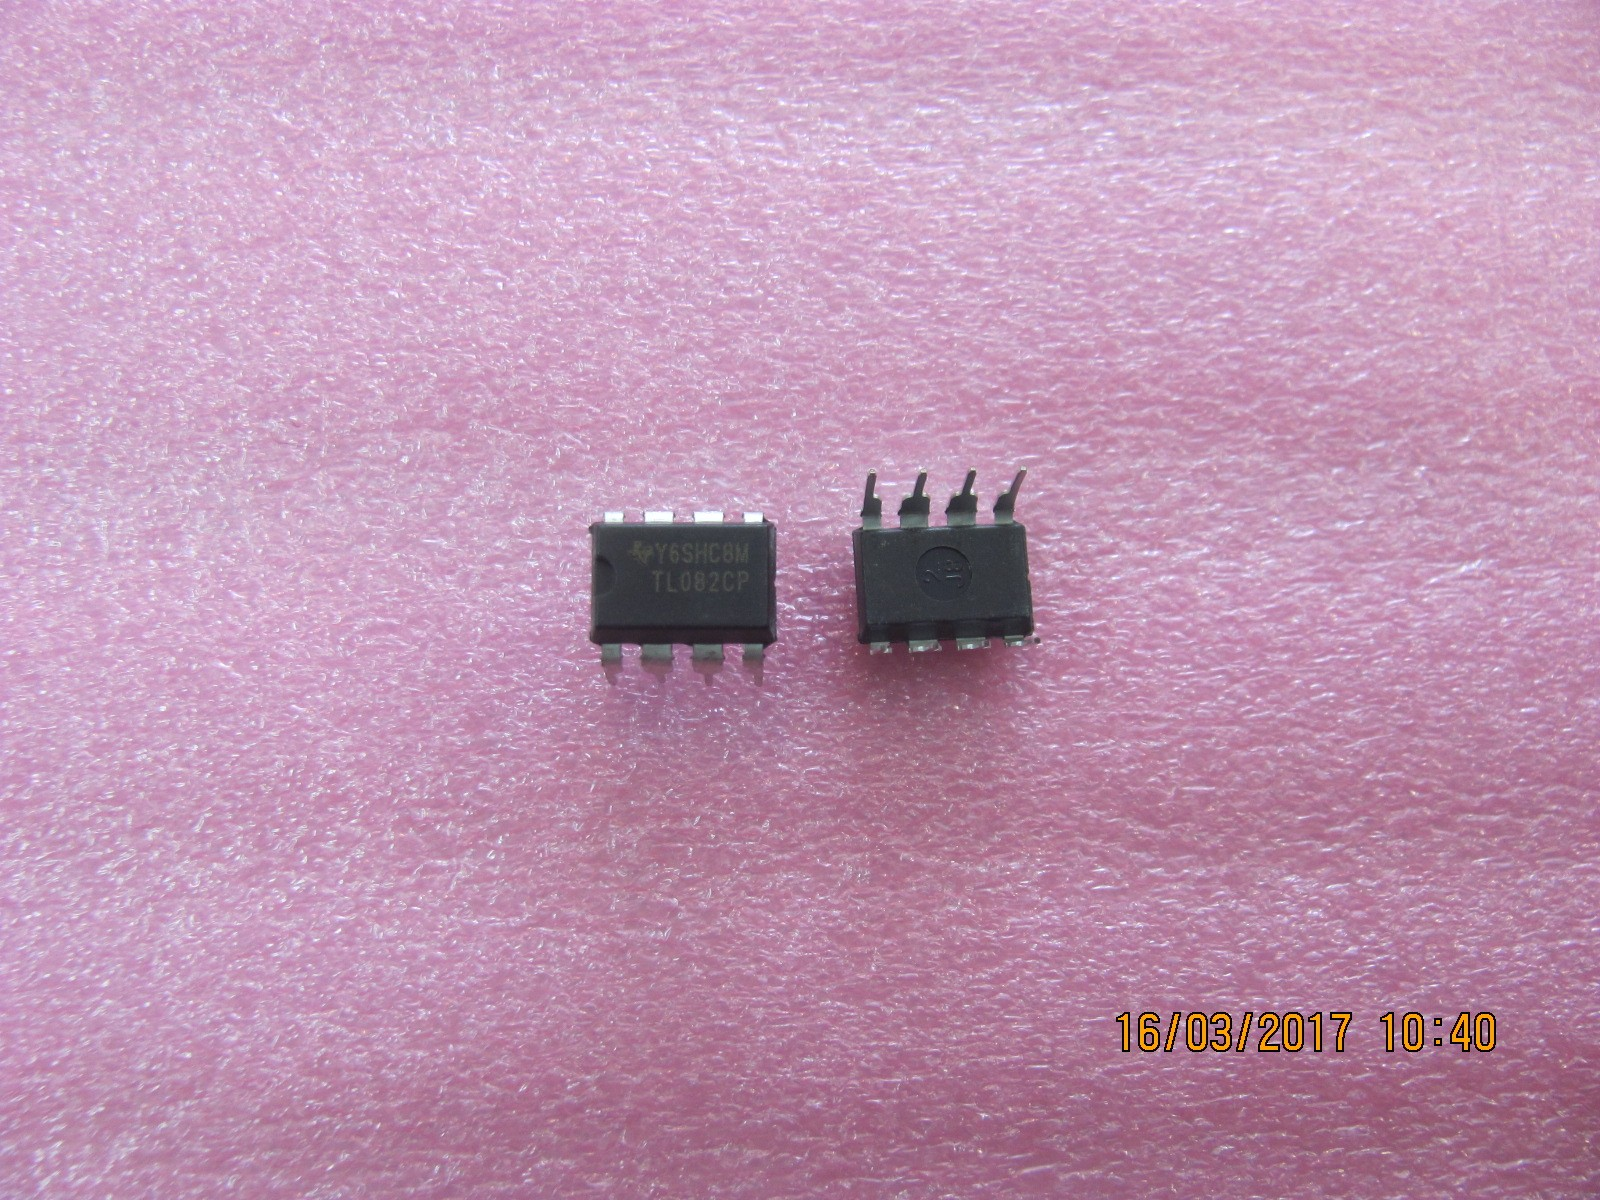 Tl082 Tl082cp Ti Dip8 Ic Jfet Input Operational Amplifiers New Z3 Dual Amplifier Schematic Atvpartselectronique